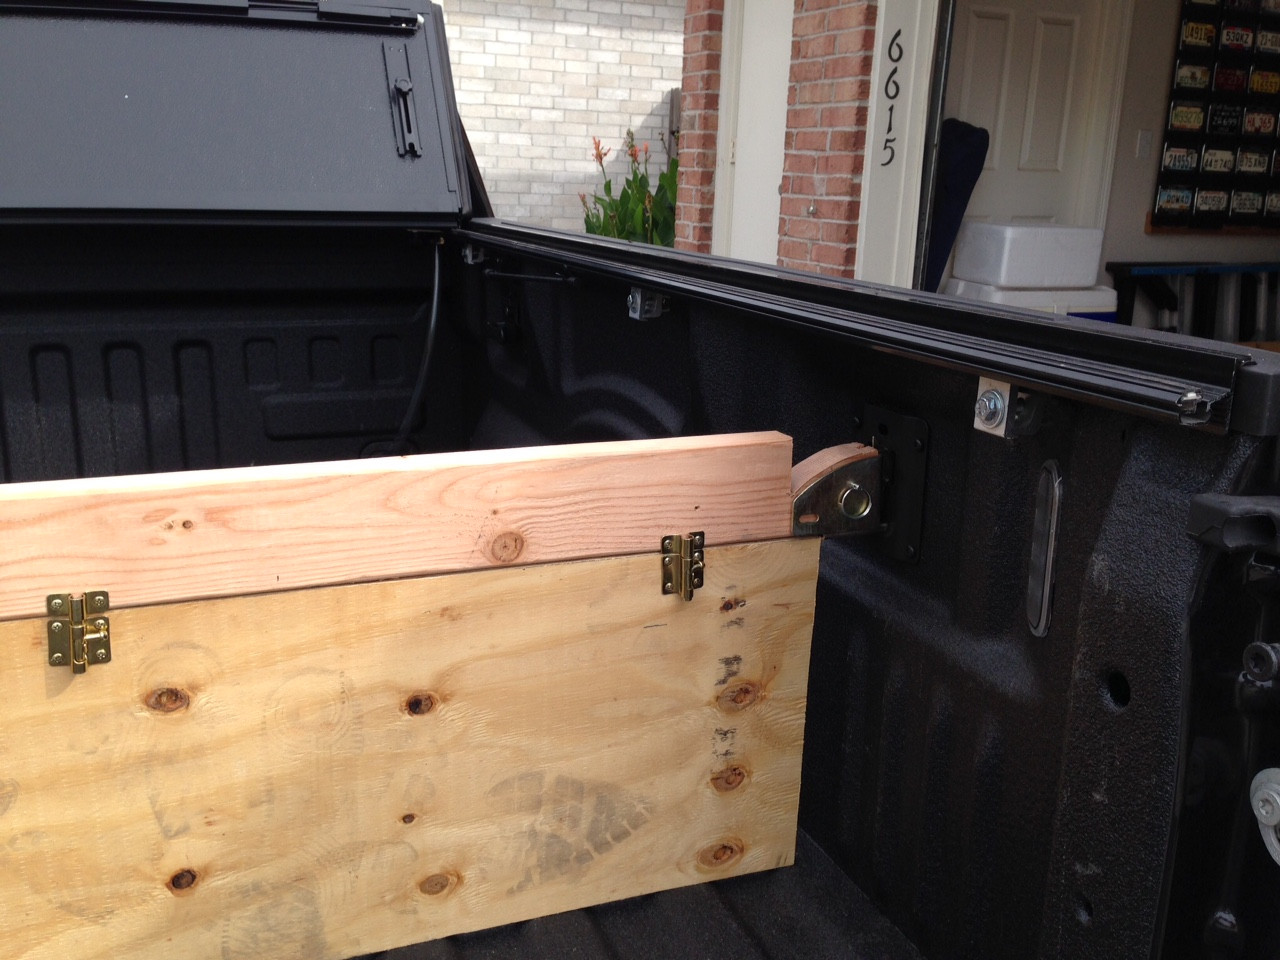 Best ideas about DIY Truck Bed Divider . Save or Pin DIY bed divider Page 2 Ford F150 Forum munity of Now.